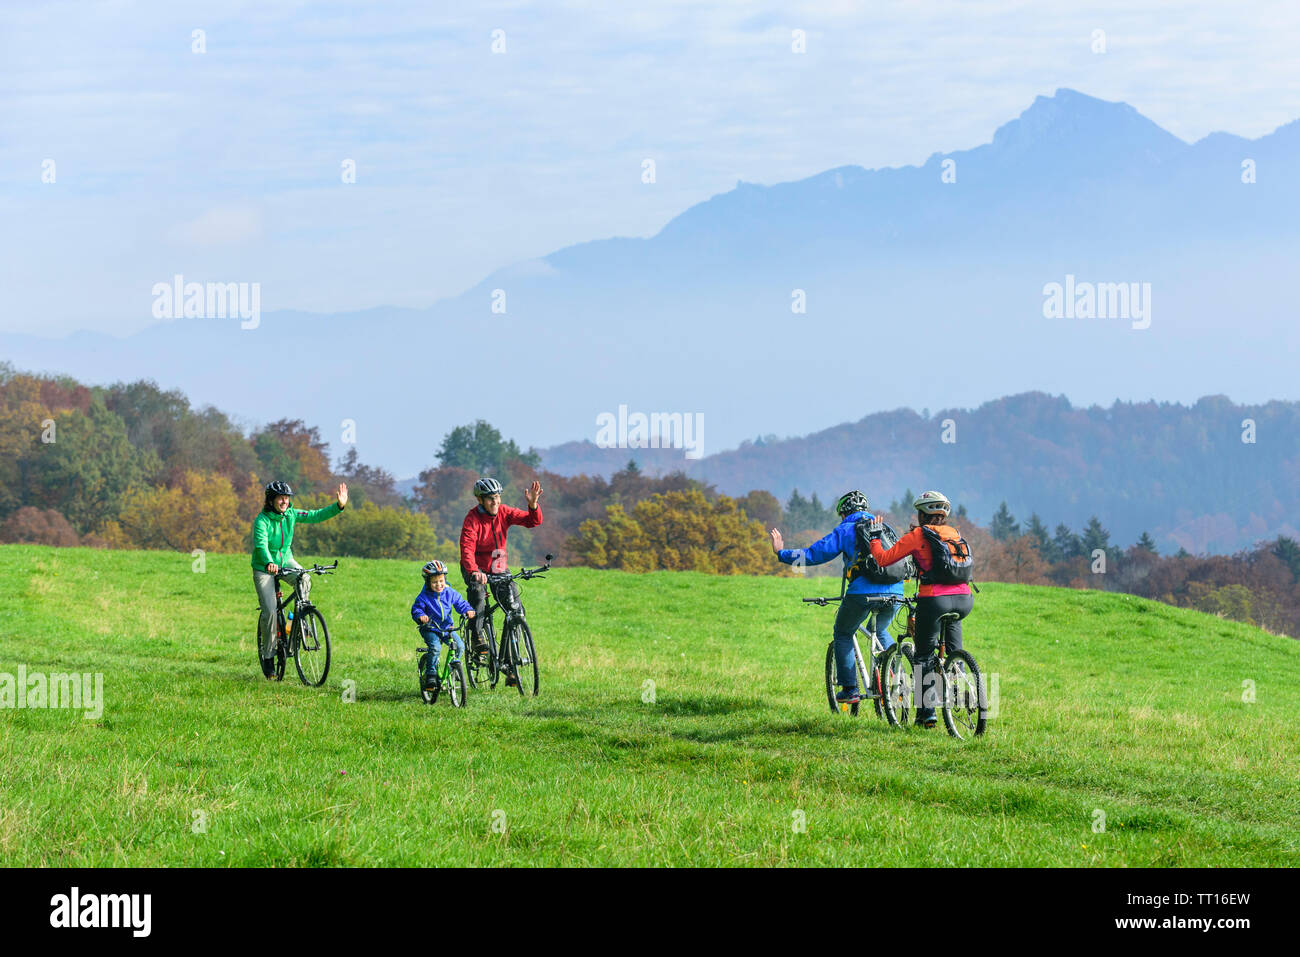 Cyclists meet in autumn landscape - Stock Image